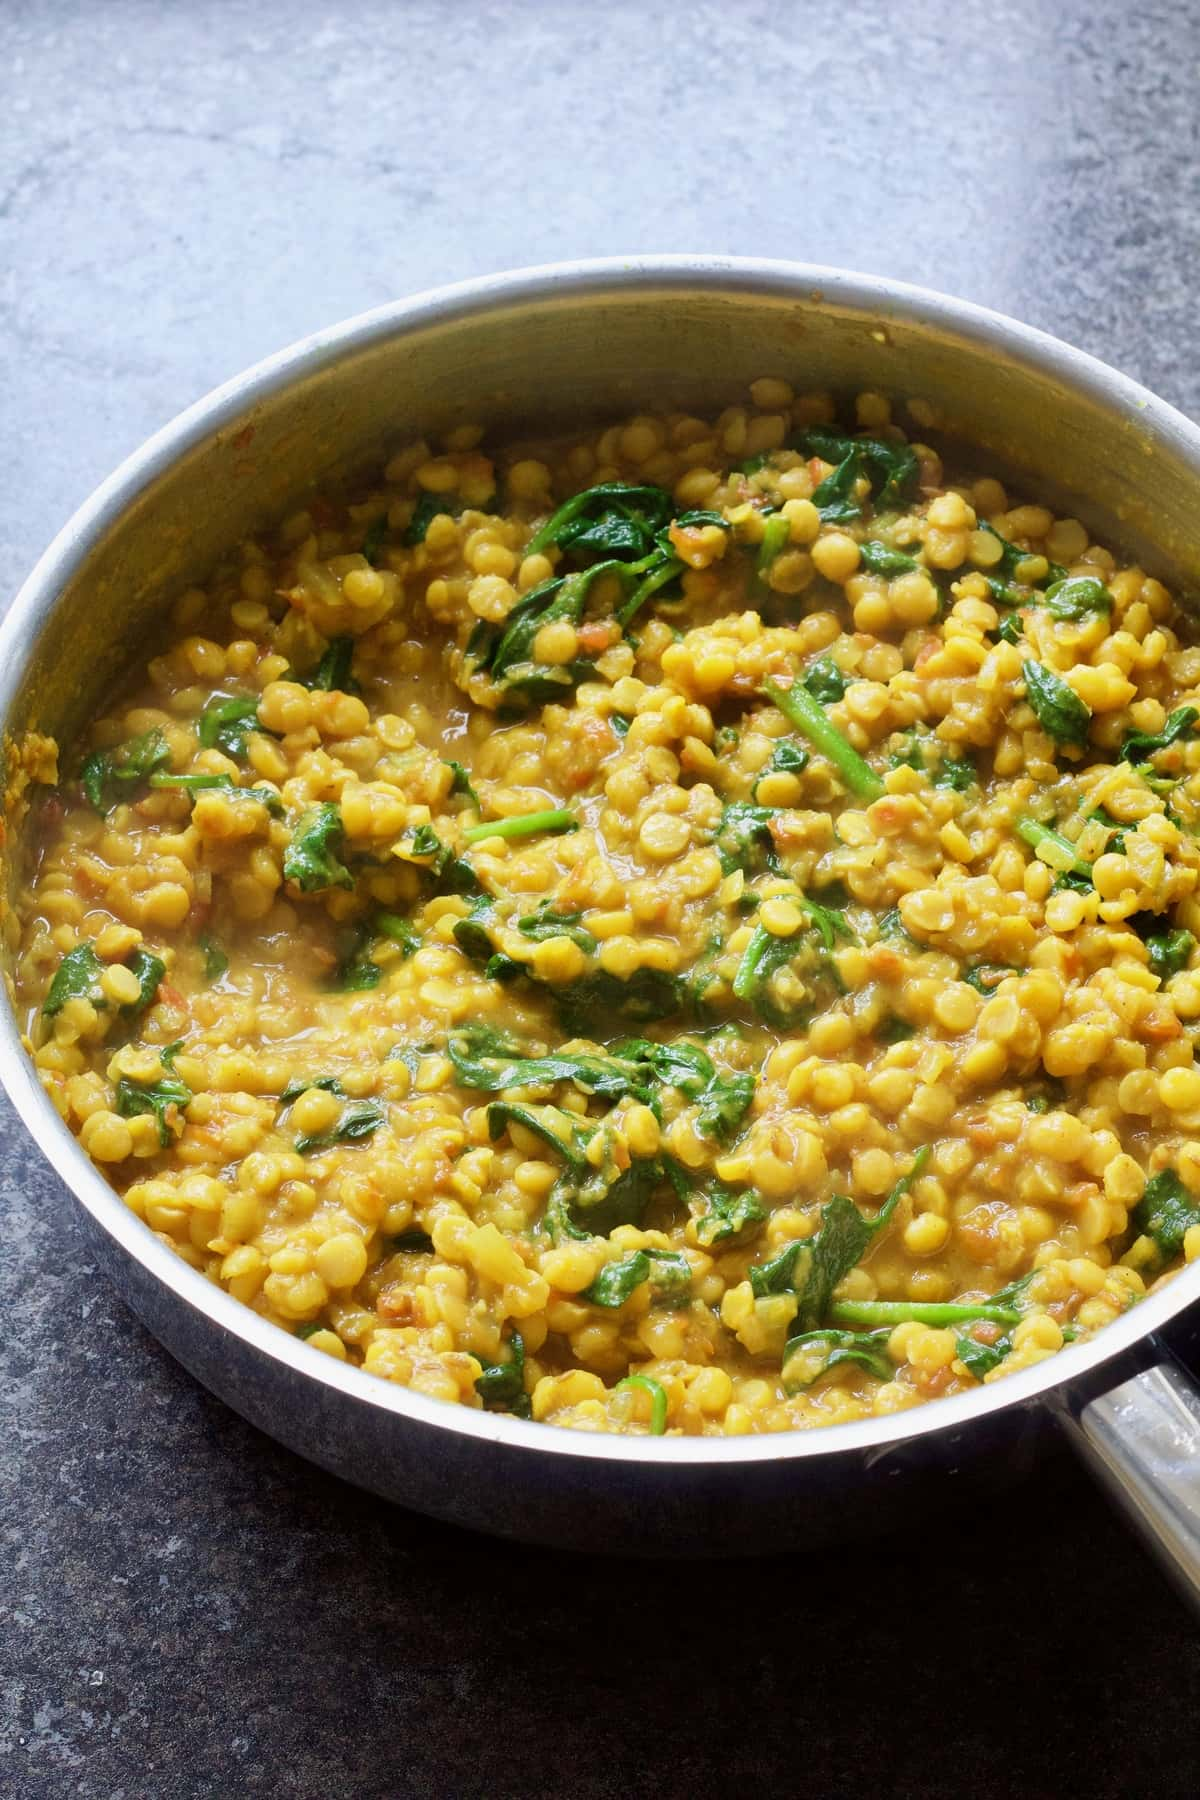 Finished dhal with wilted spinach.